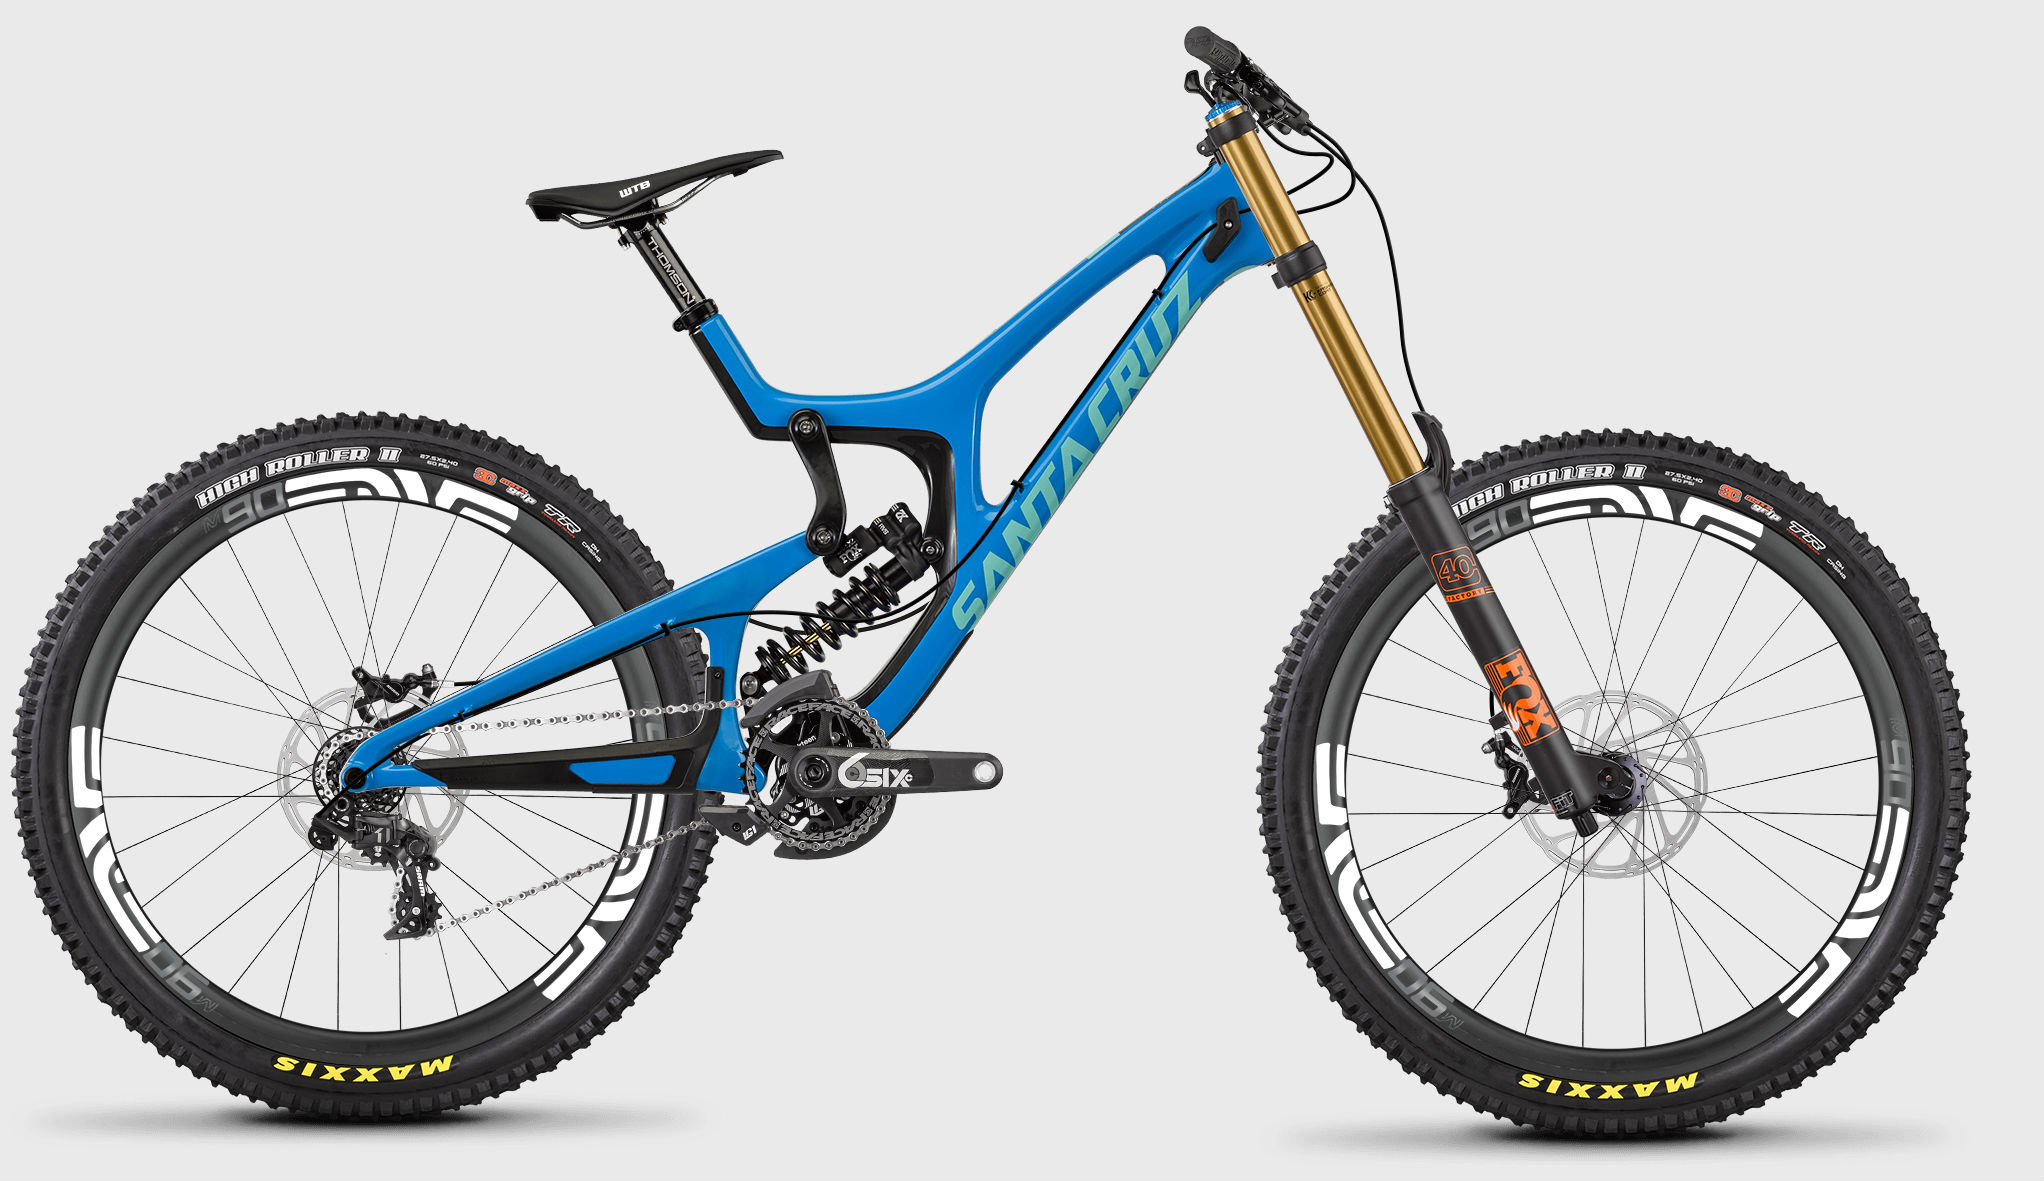 be2ff26a638 Santa Cruz's V10 is one of the winningest World Cup downhill bikes of all  time, and the top-end build comes with a price tag to match!